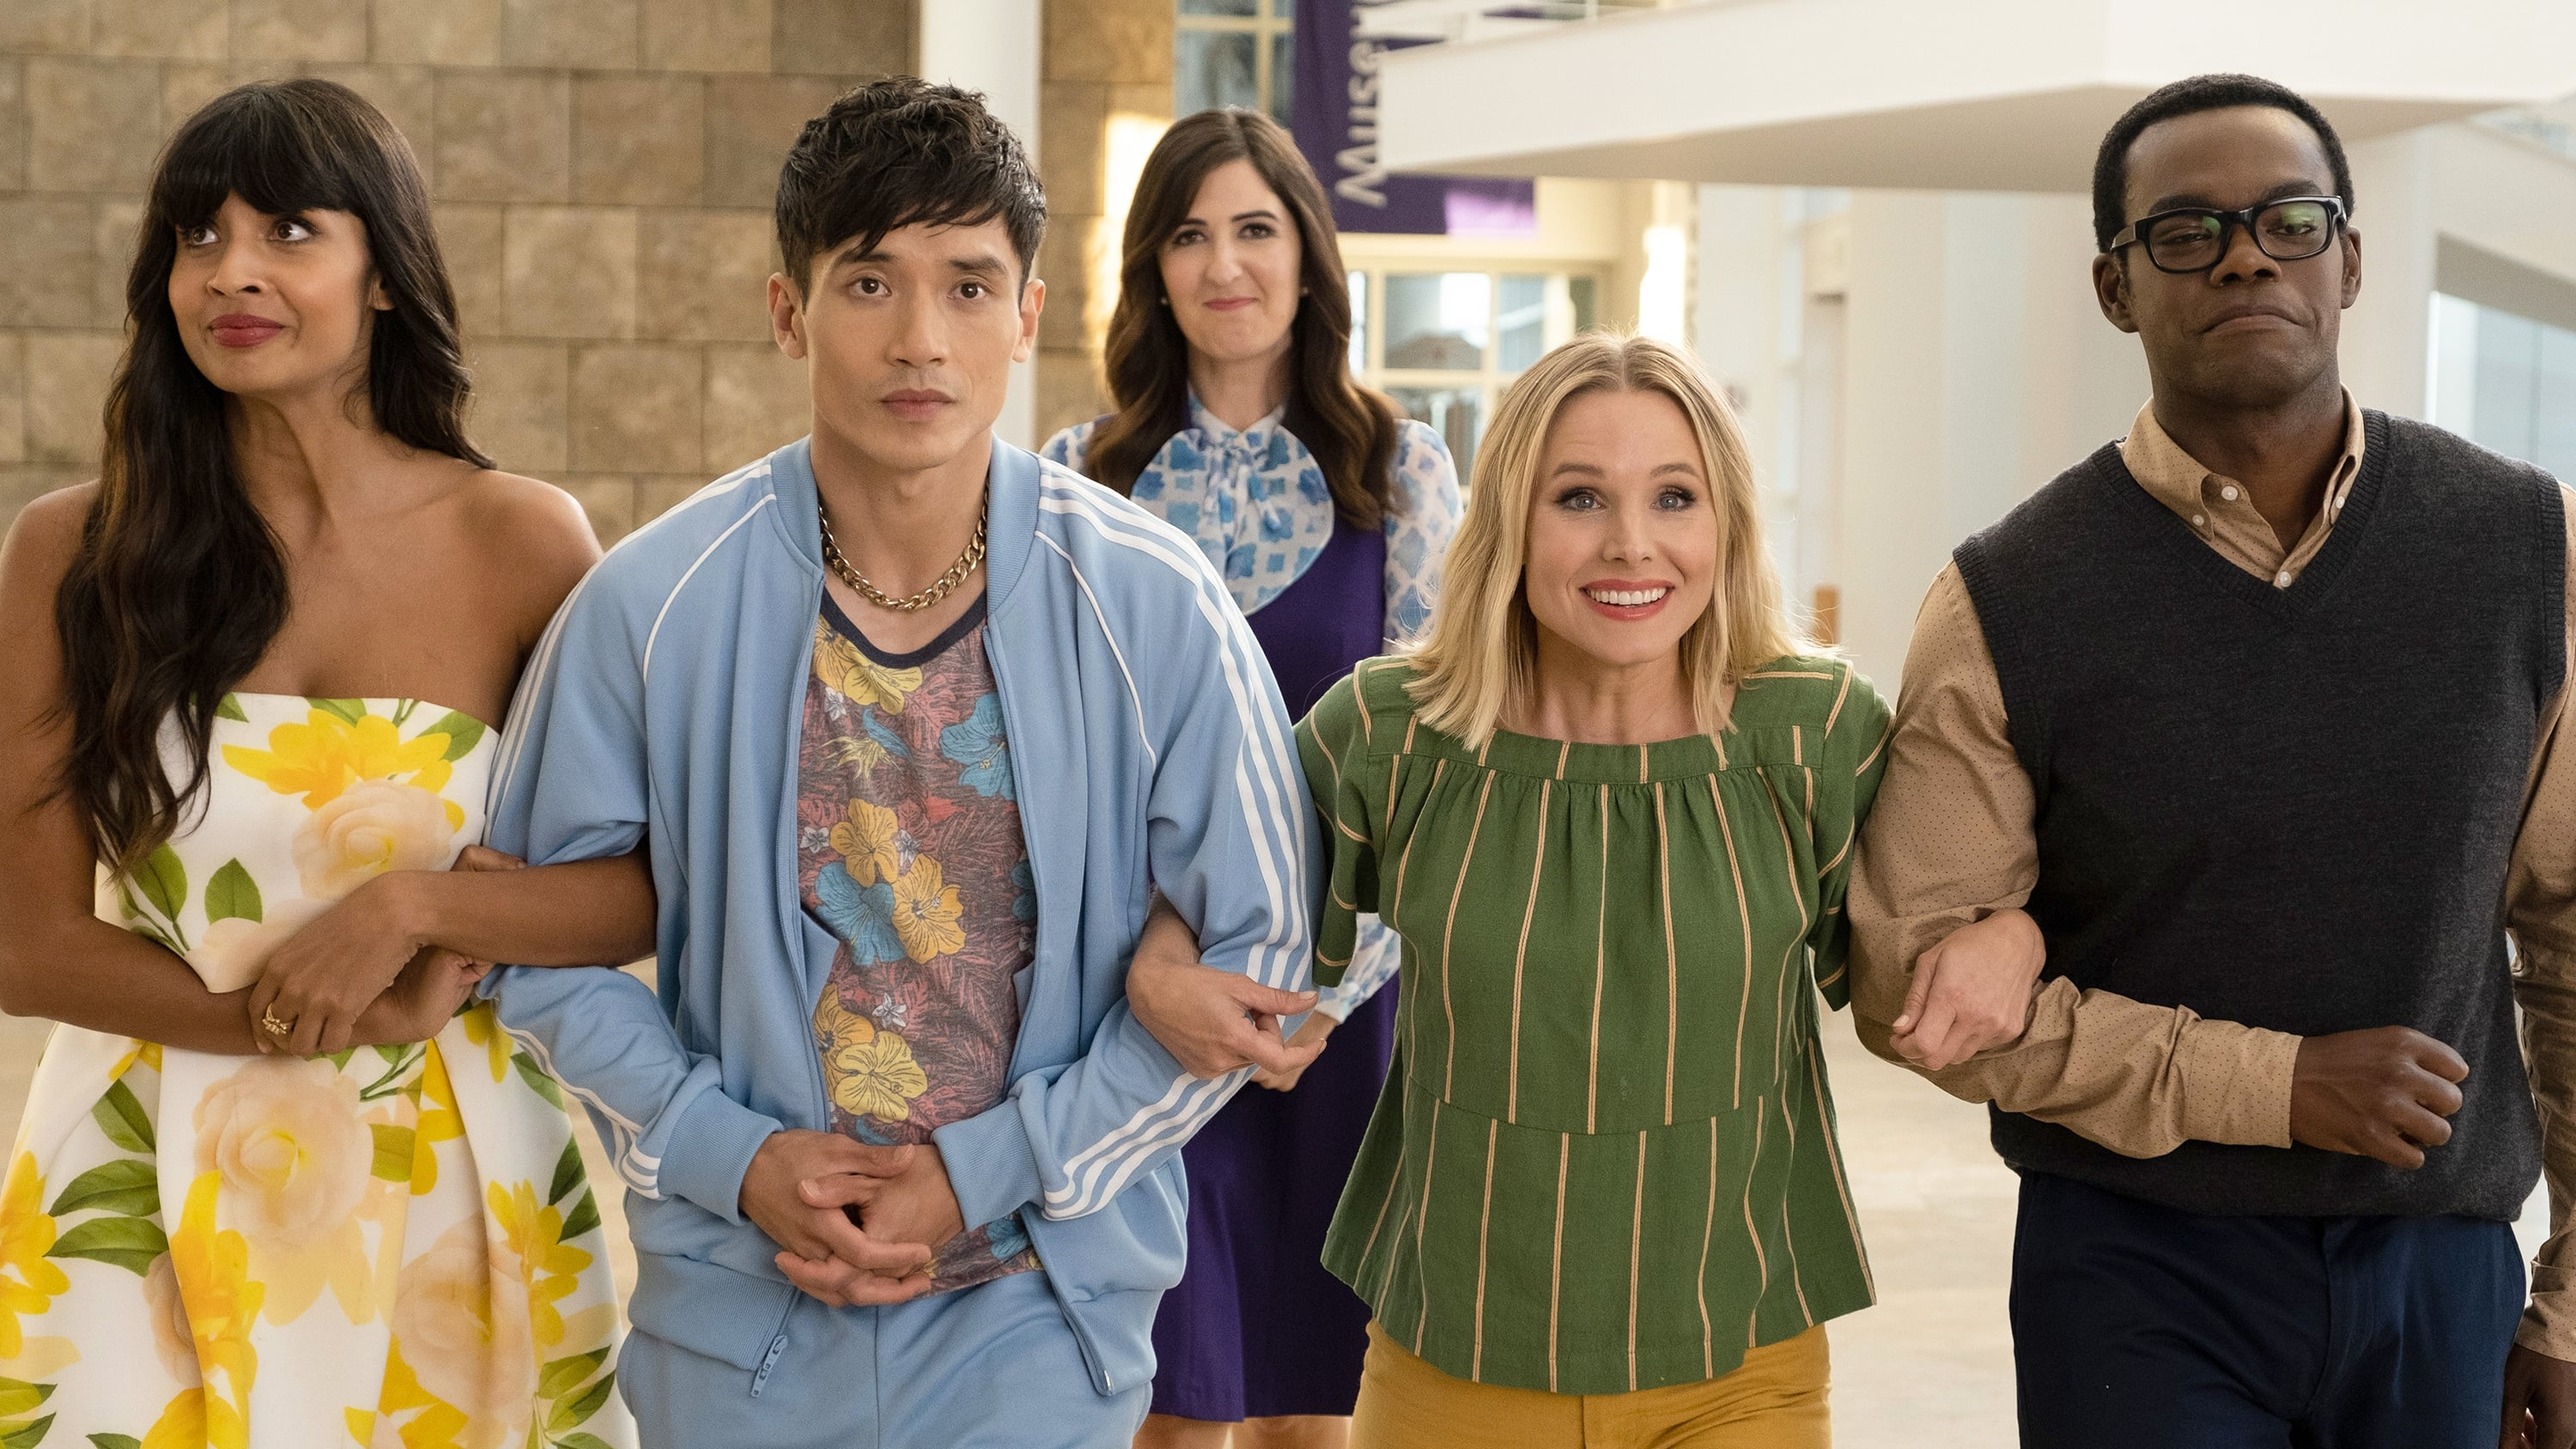 The Good Place - Season 4 Episode 12 : Patty